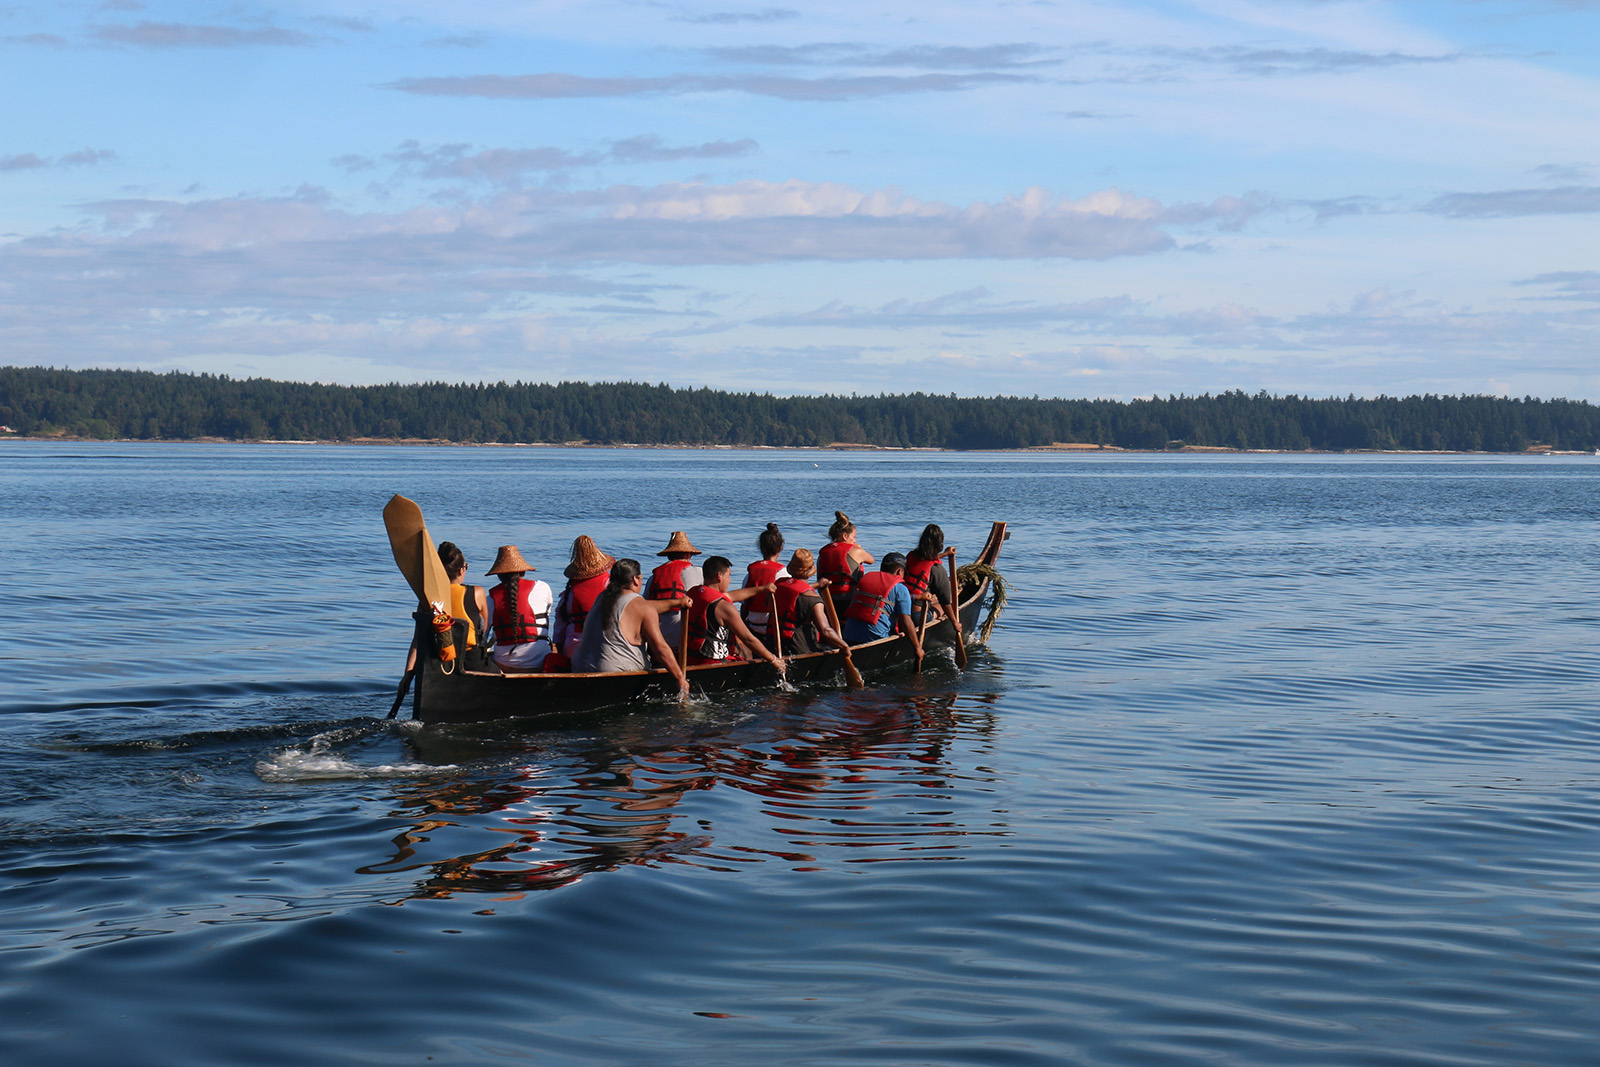 The Squaxin Island canoe family on the Tribal Canoe Journey.